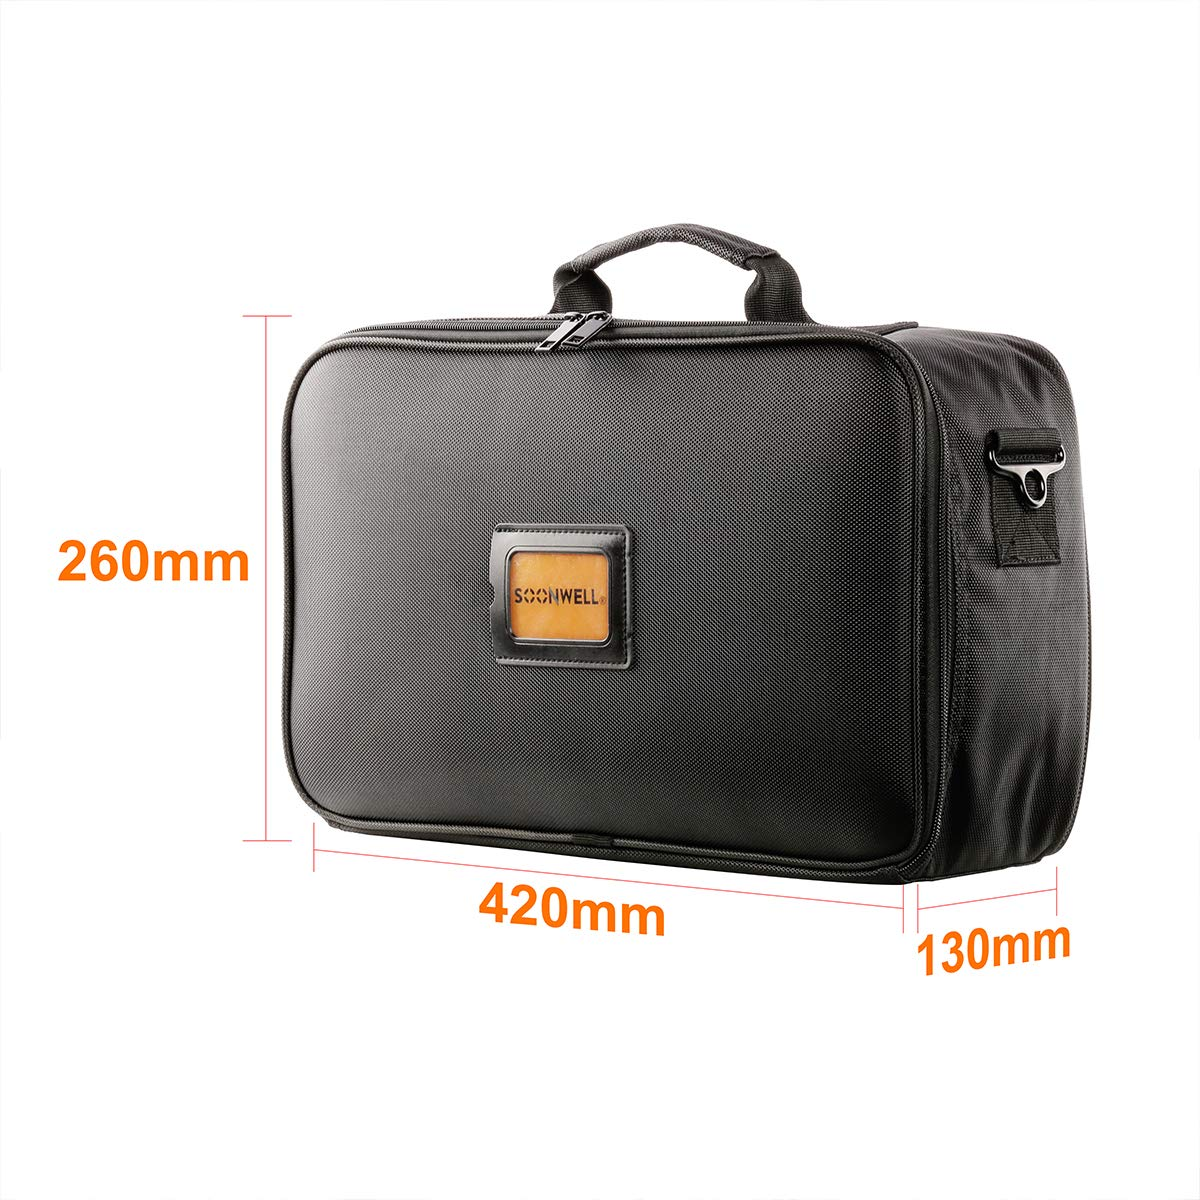 SOONWELL Durable Light Kit Bag Durable Nylon Case Studio Carrying Case with Shoulder Strap Padded Side Panels for Photography or Video